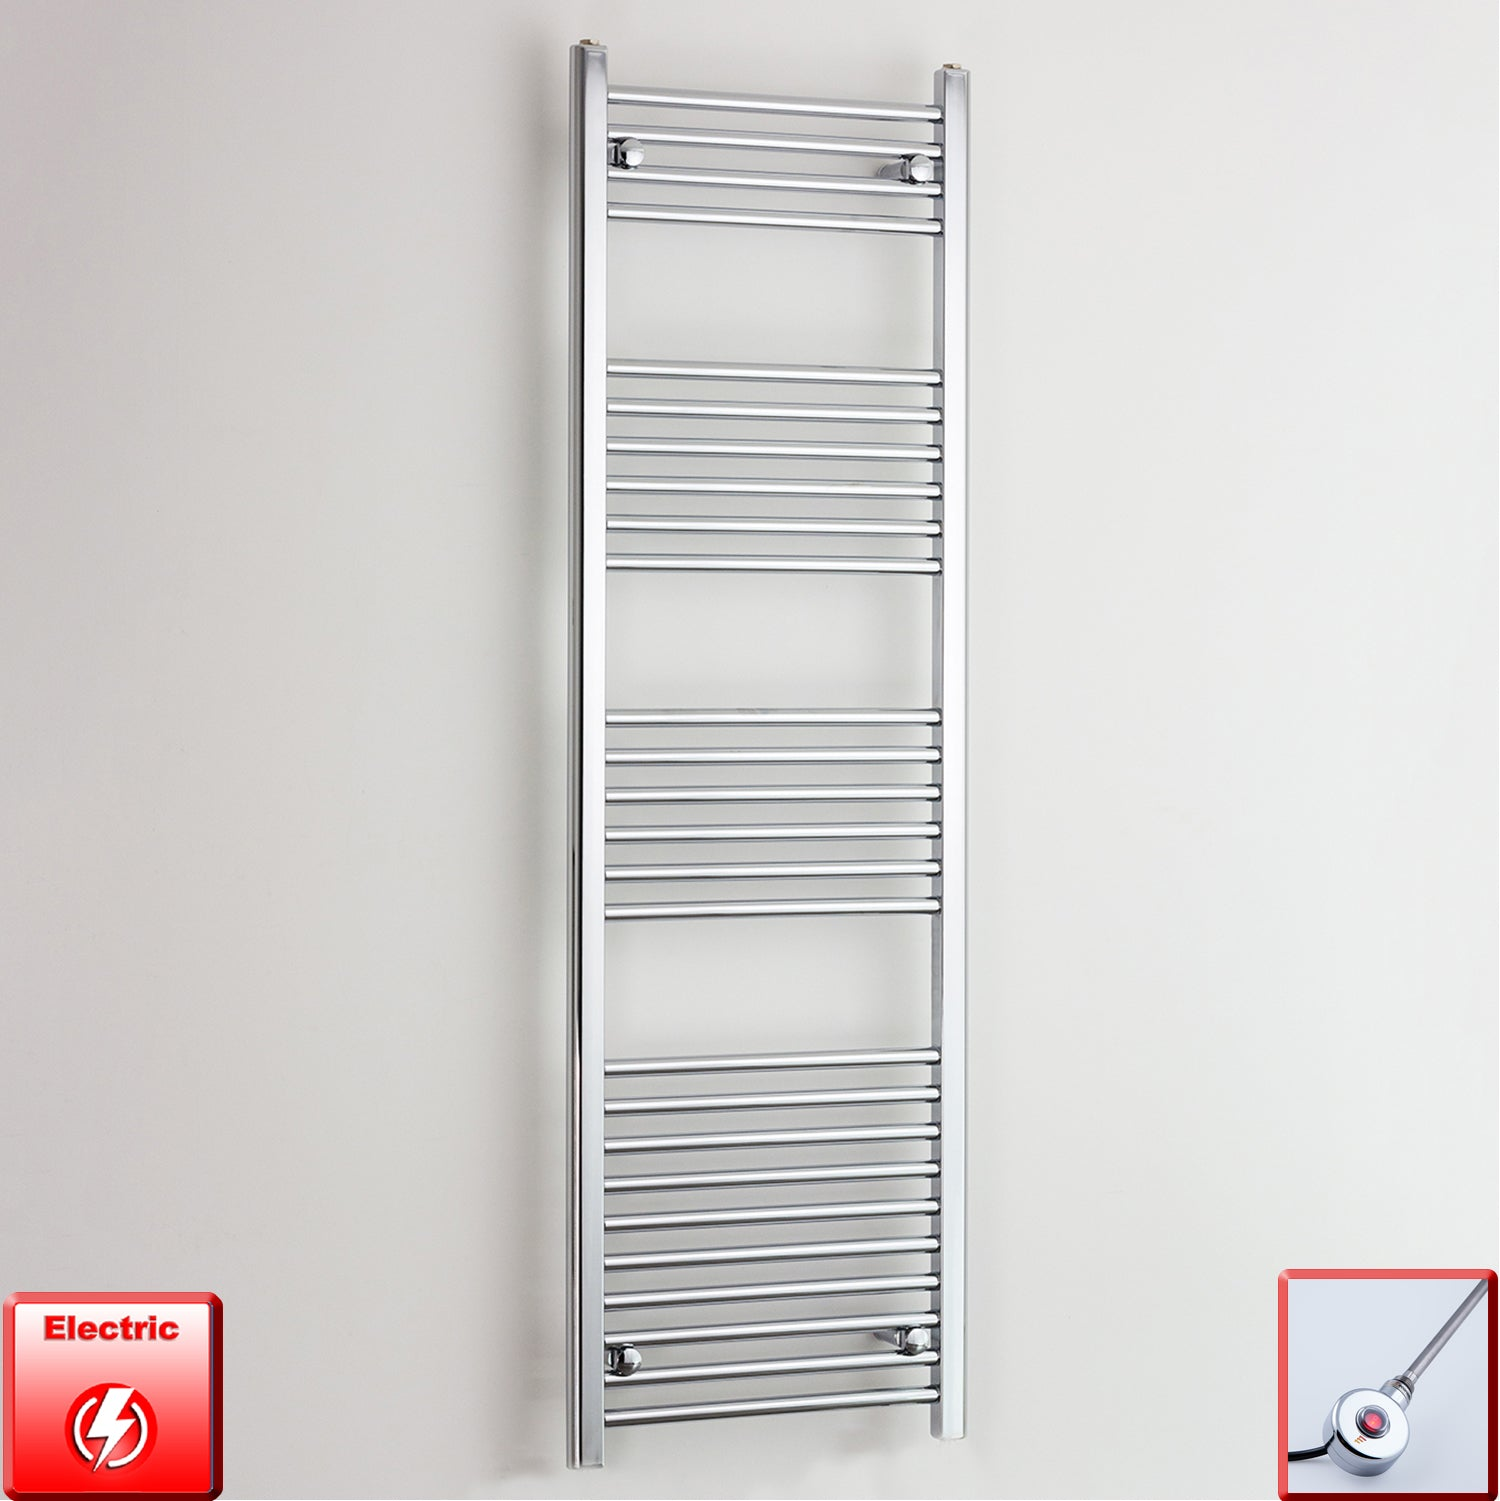 600mm Wide 1800mm High Pre-Filled Chrome Electric Towel Rail Radiator With Ecoradco on off Single Heat Element